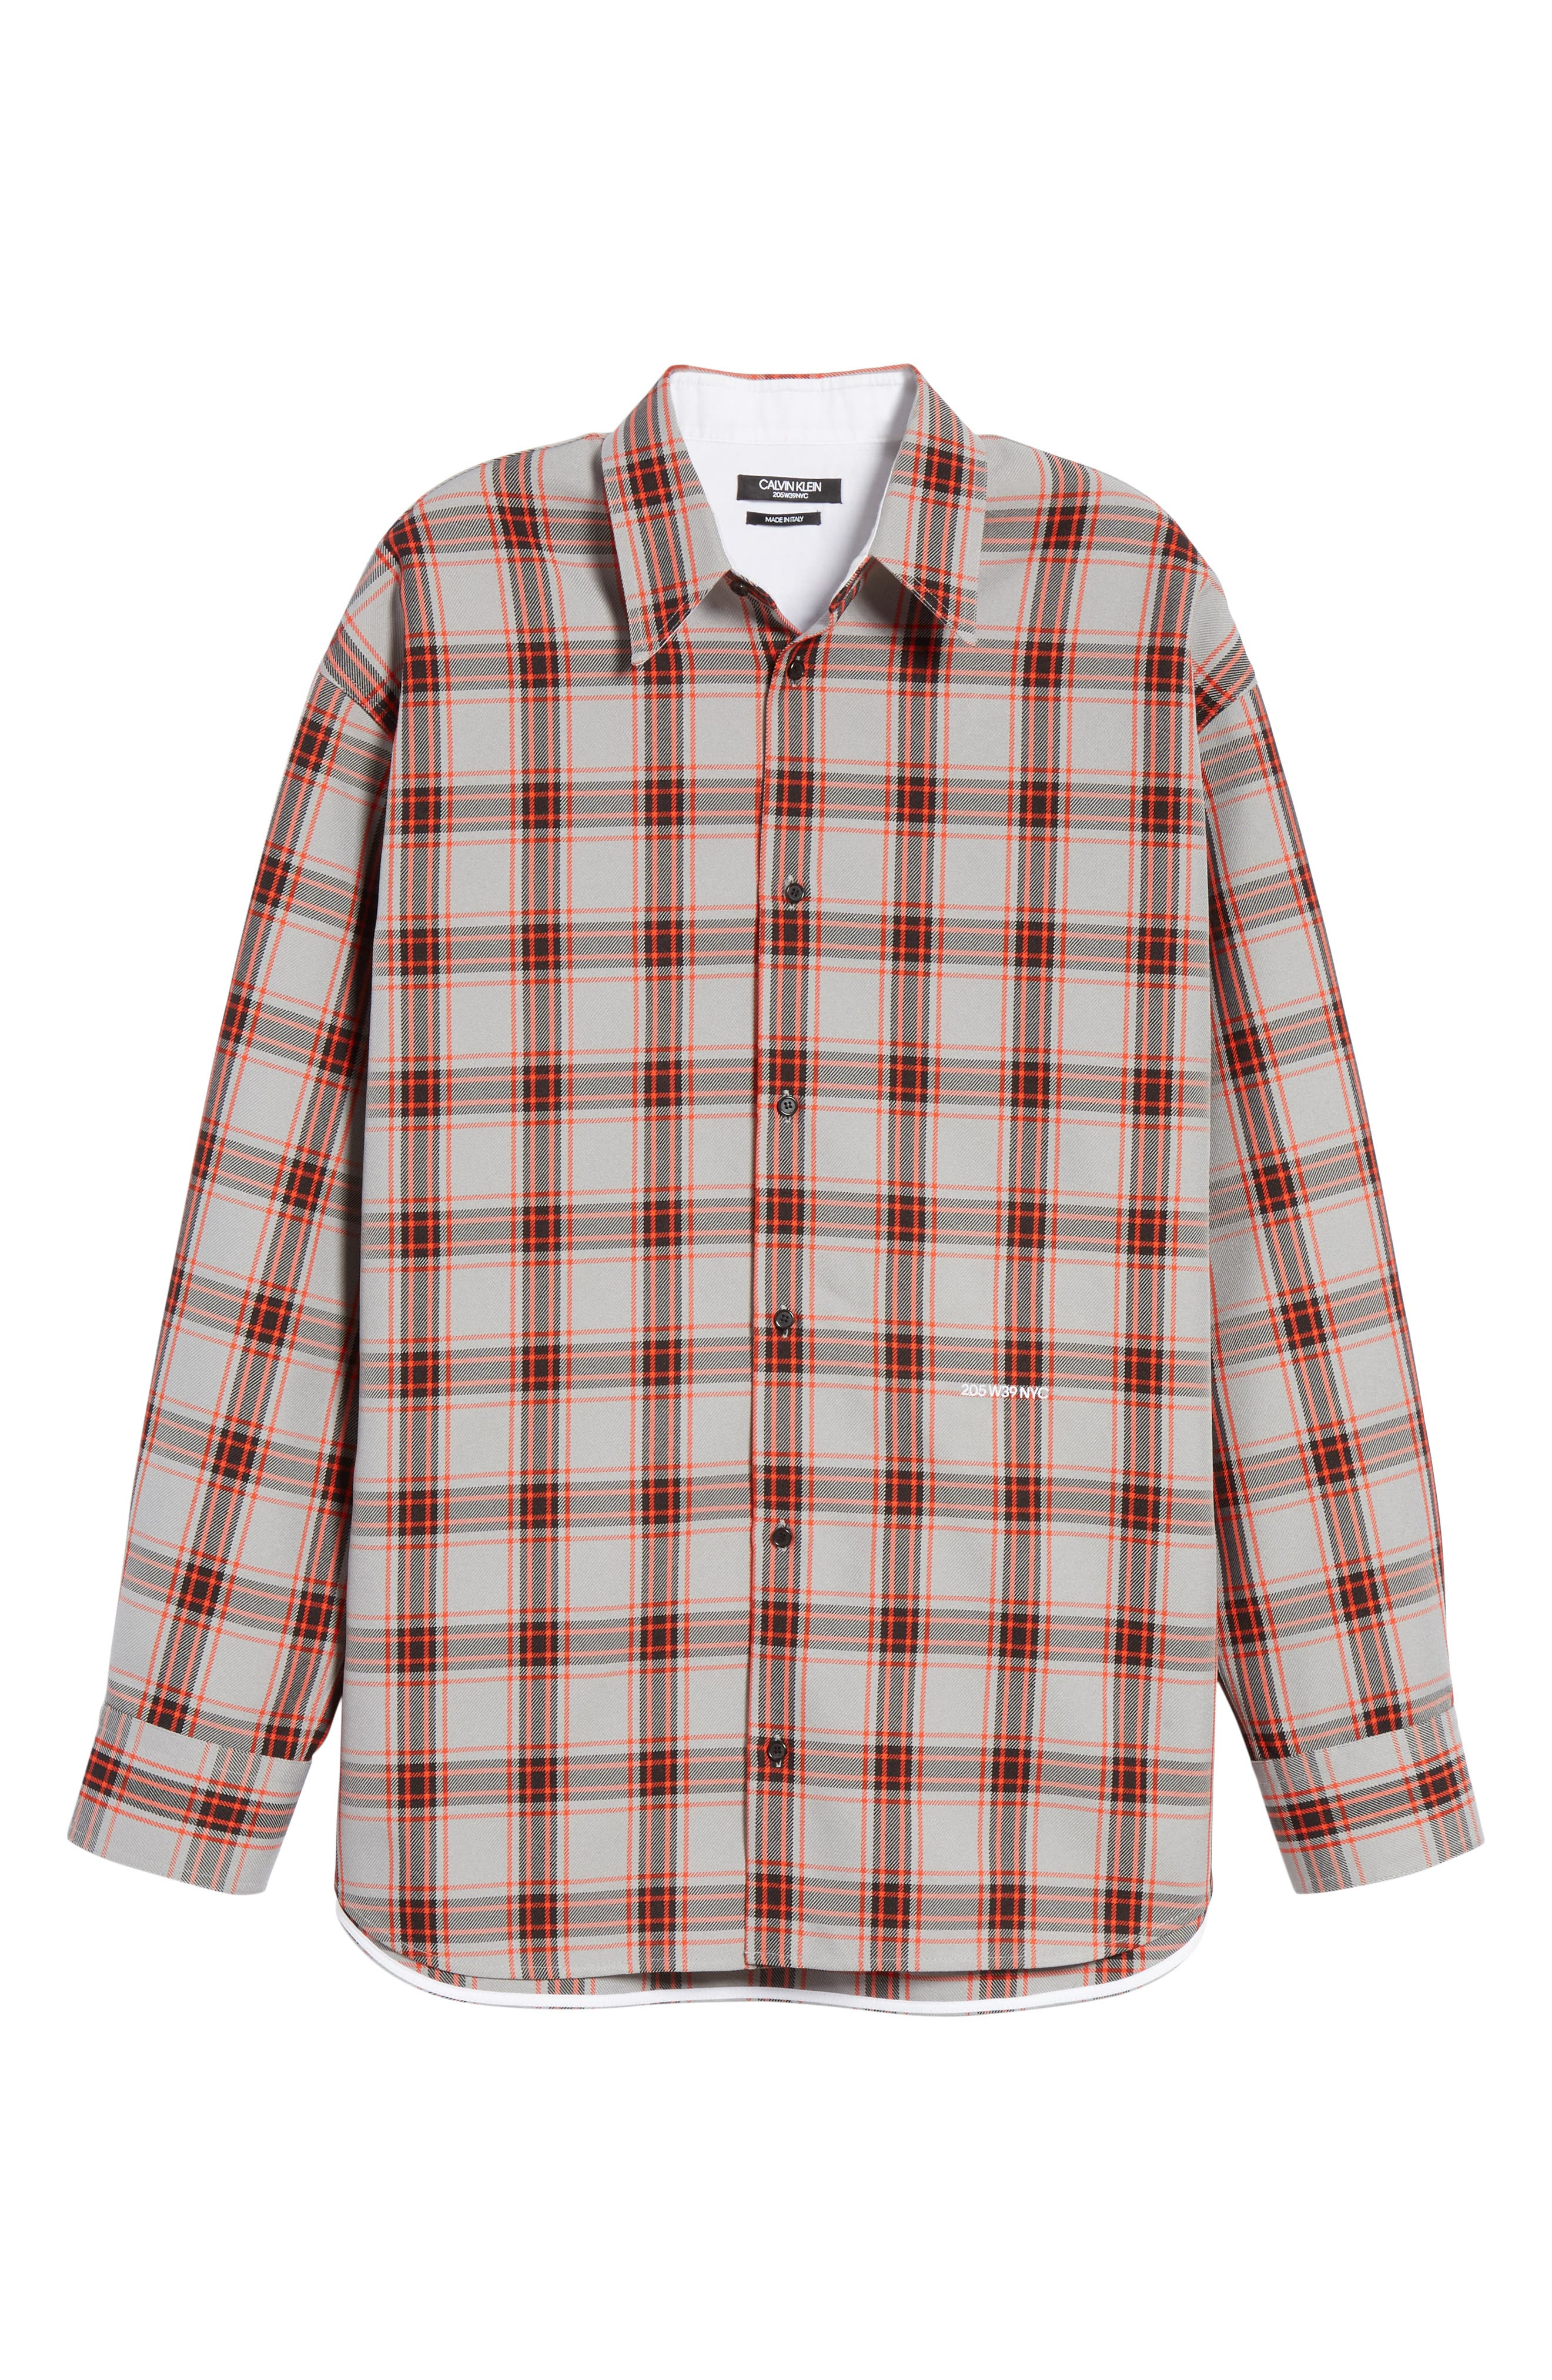 Oversize Plaid Twill Shirt,                             Alternate thumbnail 6, color,                             GREY/ RED